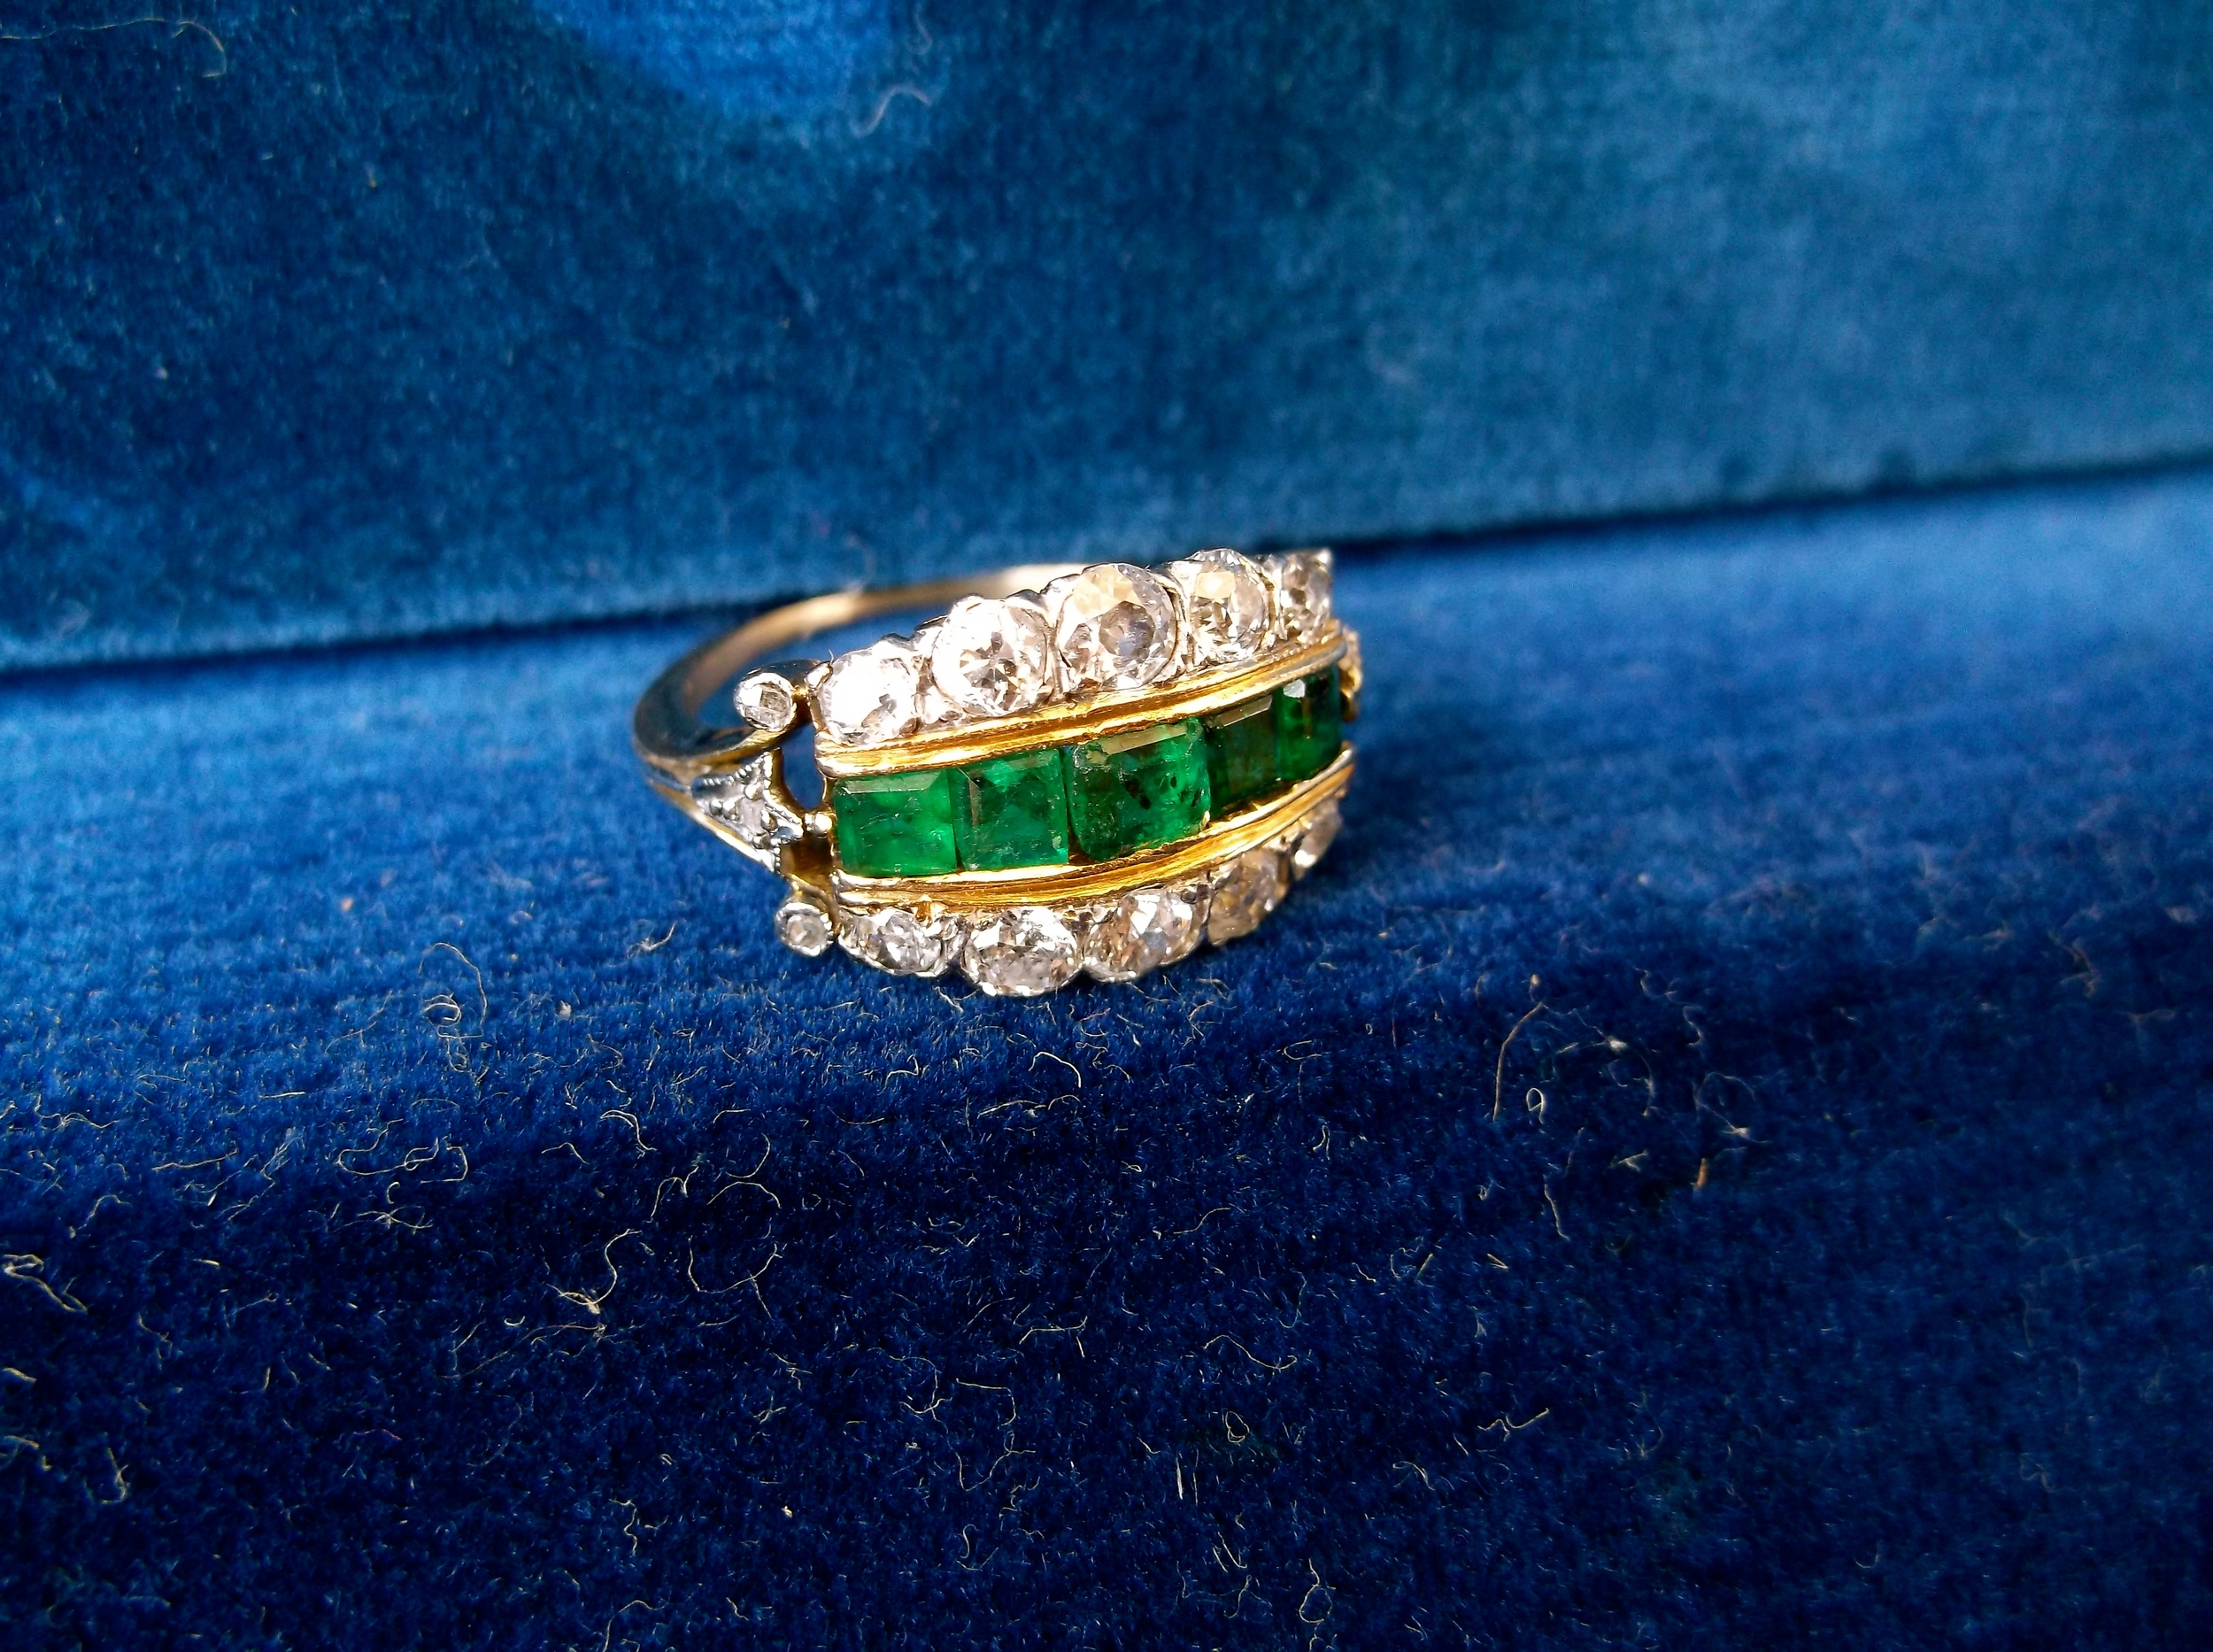 Edwardian era Old European cut diamond and emerald ring set in platinum on yellow gold.